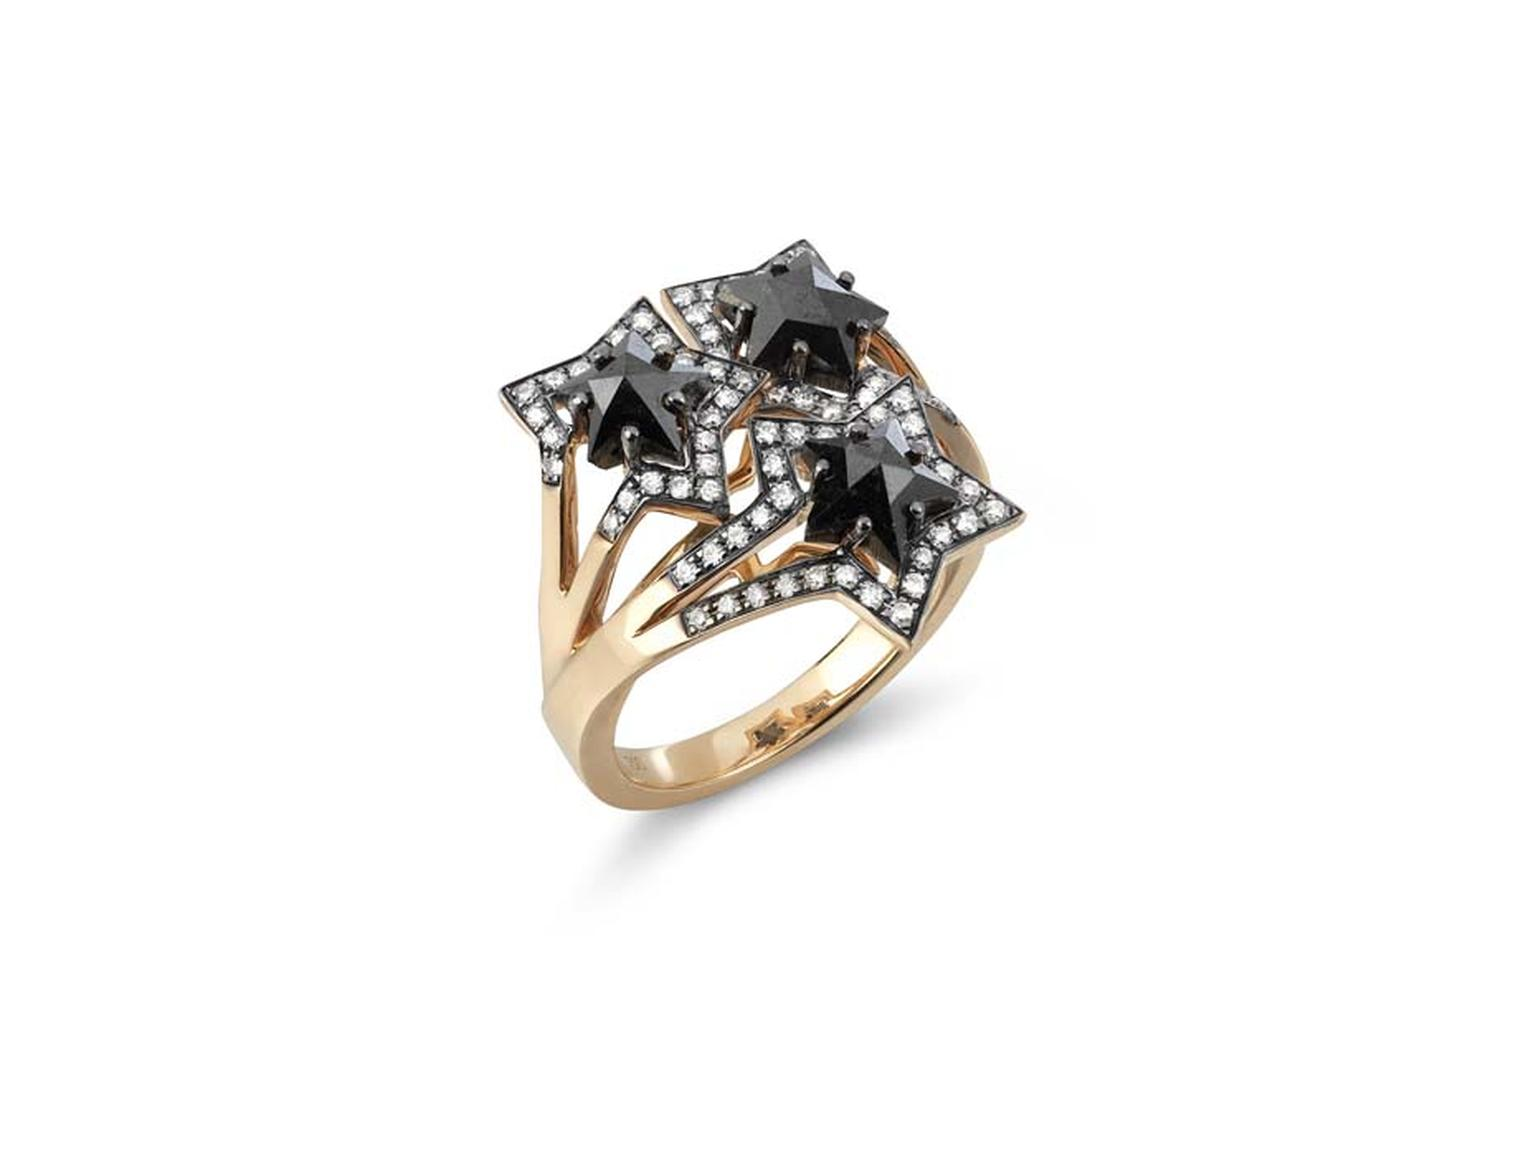 Tomasz Donocik Three Star ring with black diamond stars outlined in white diamonds.